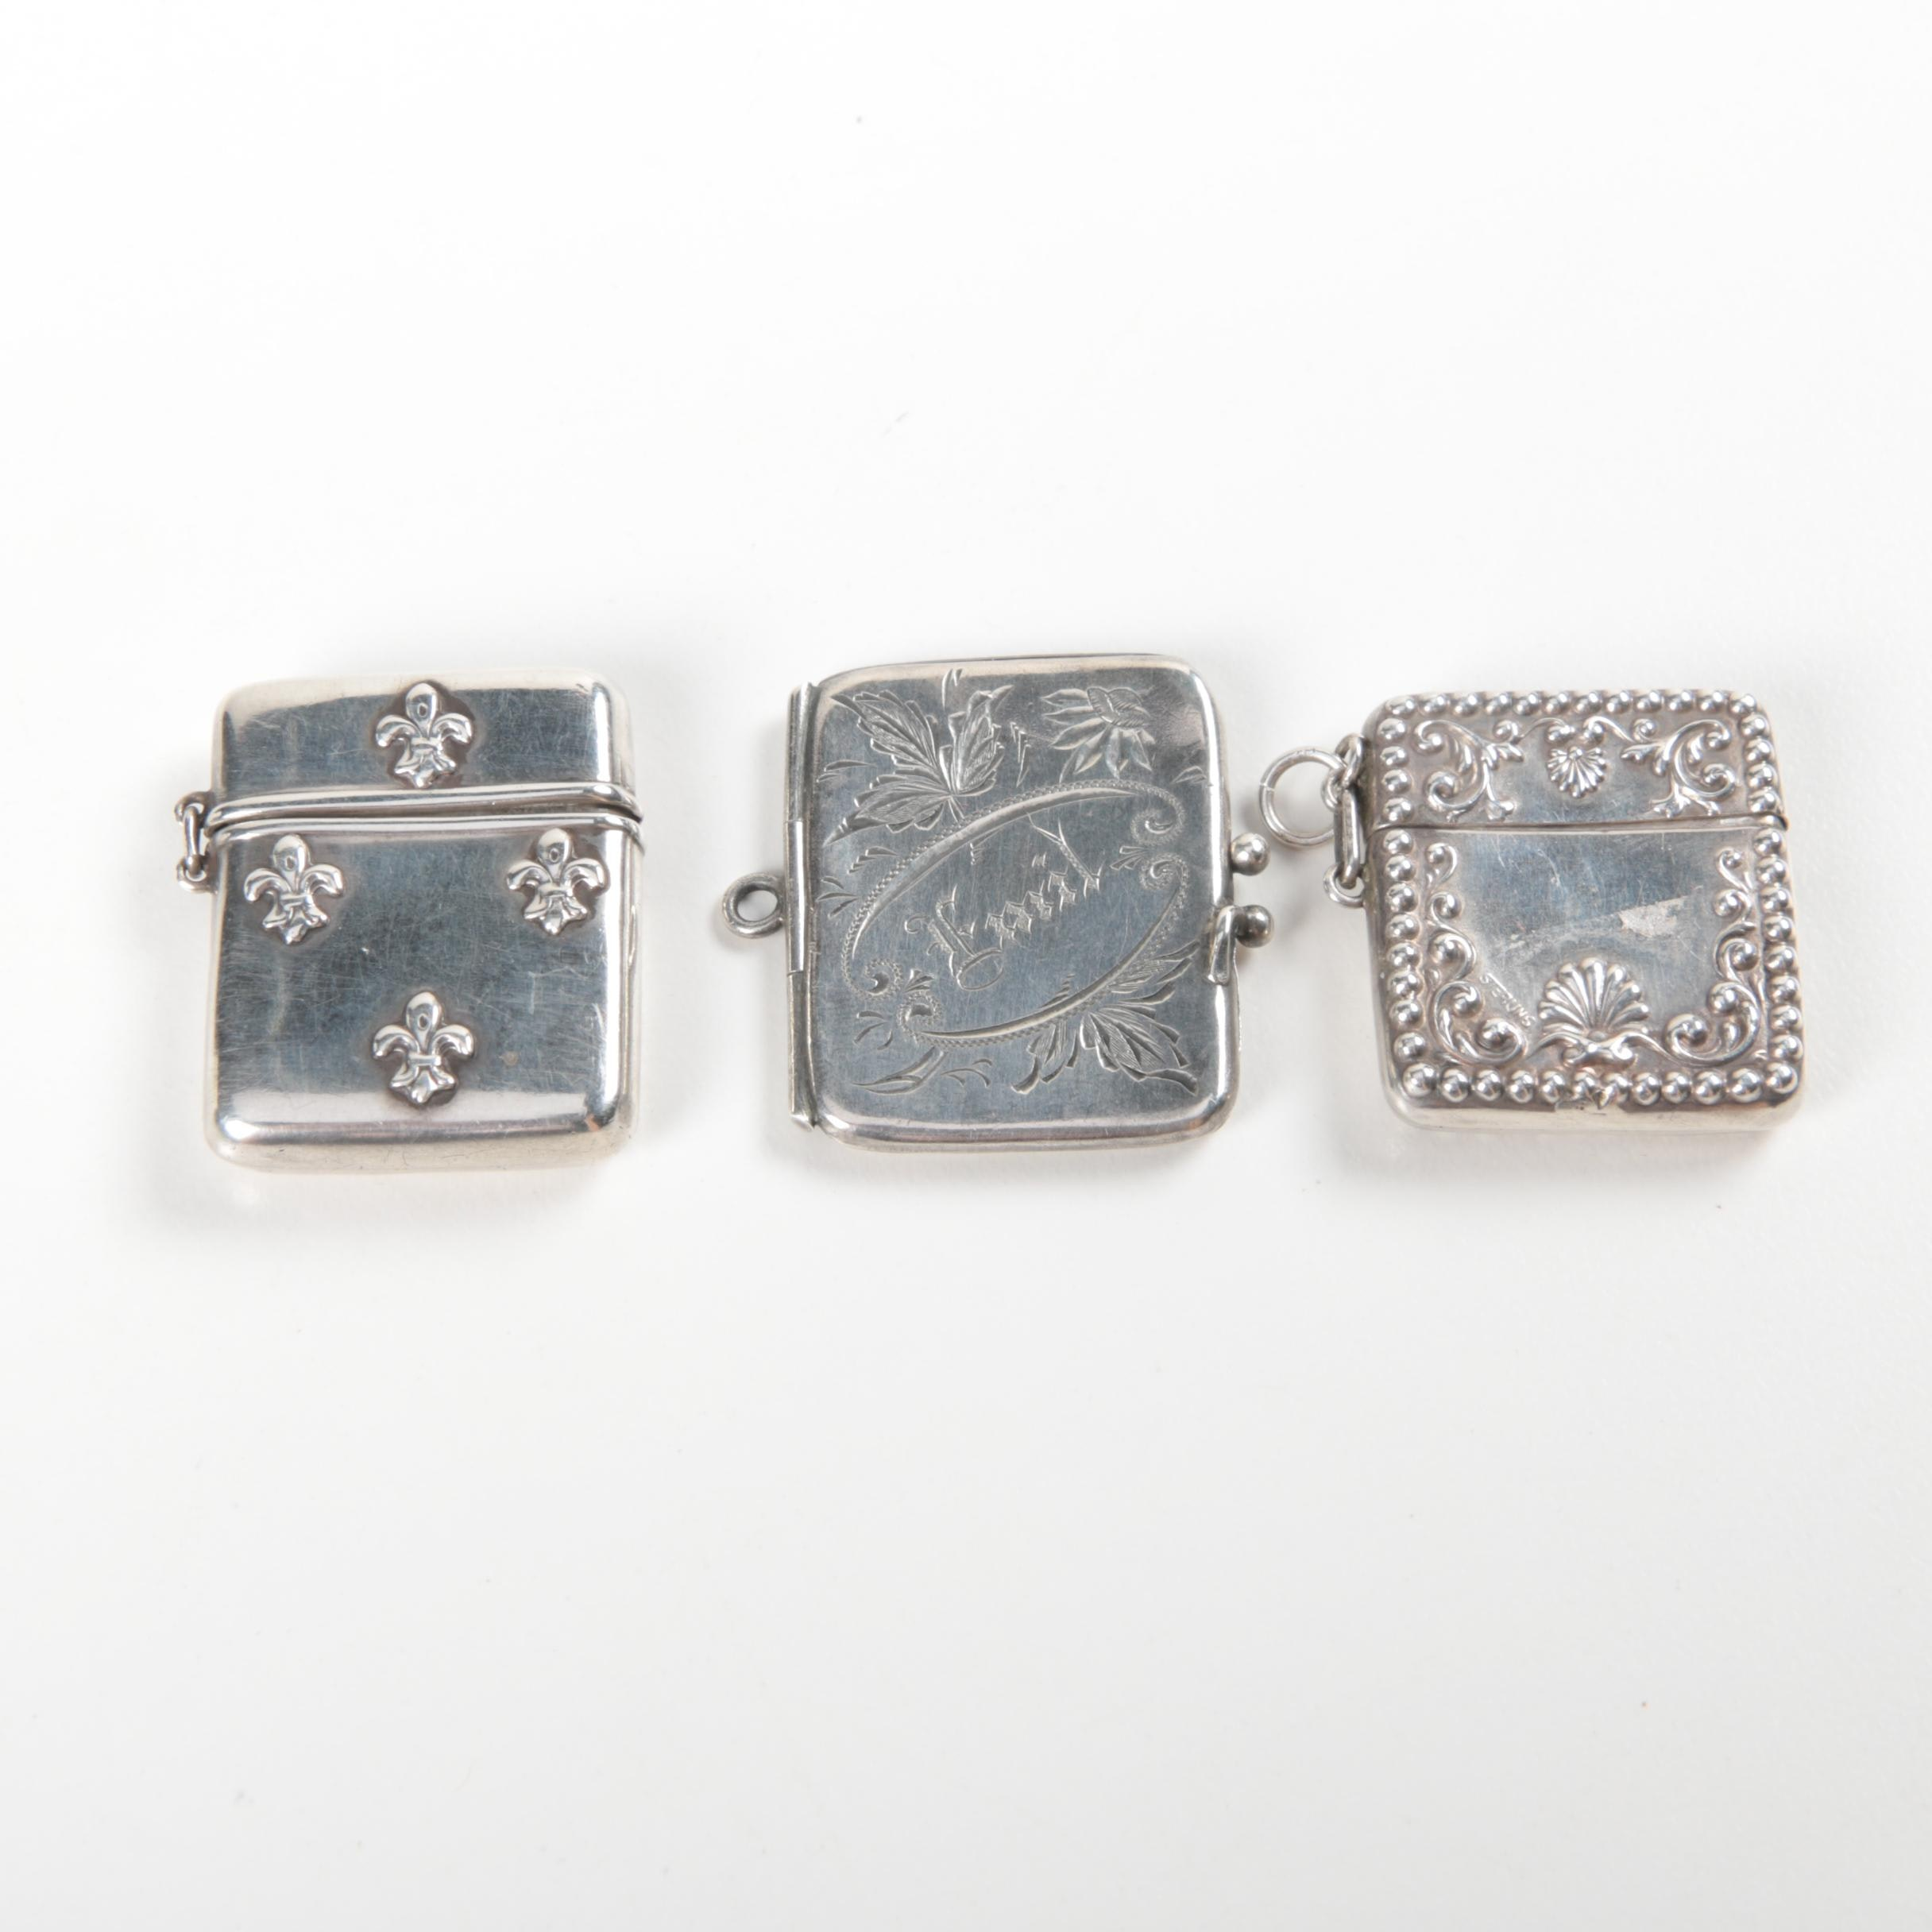 Antique Sterling Silver Vesta Cases